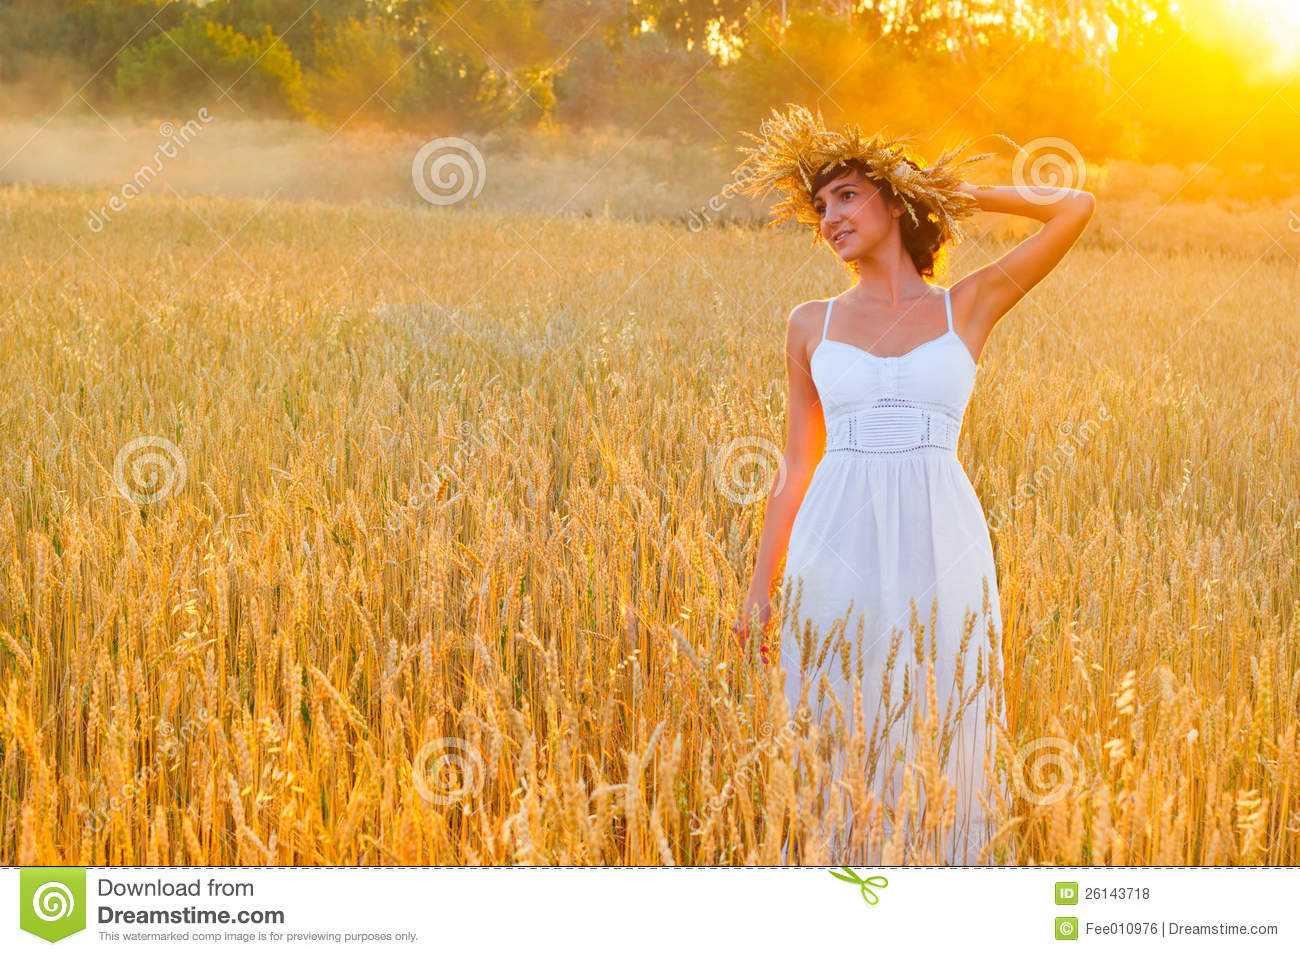 Young woman in white dress in field